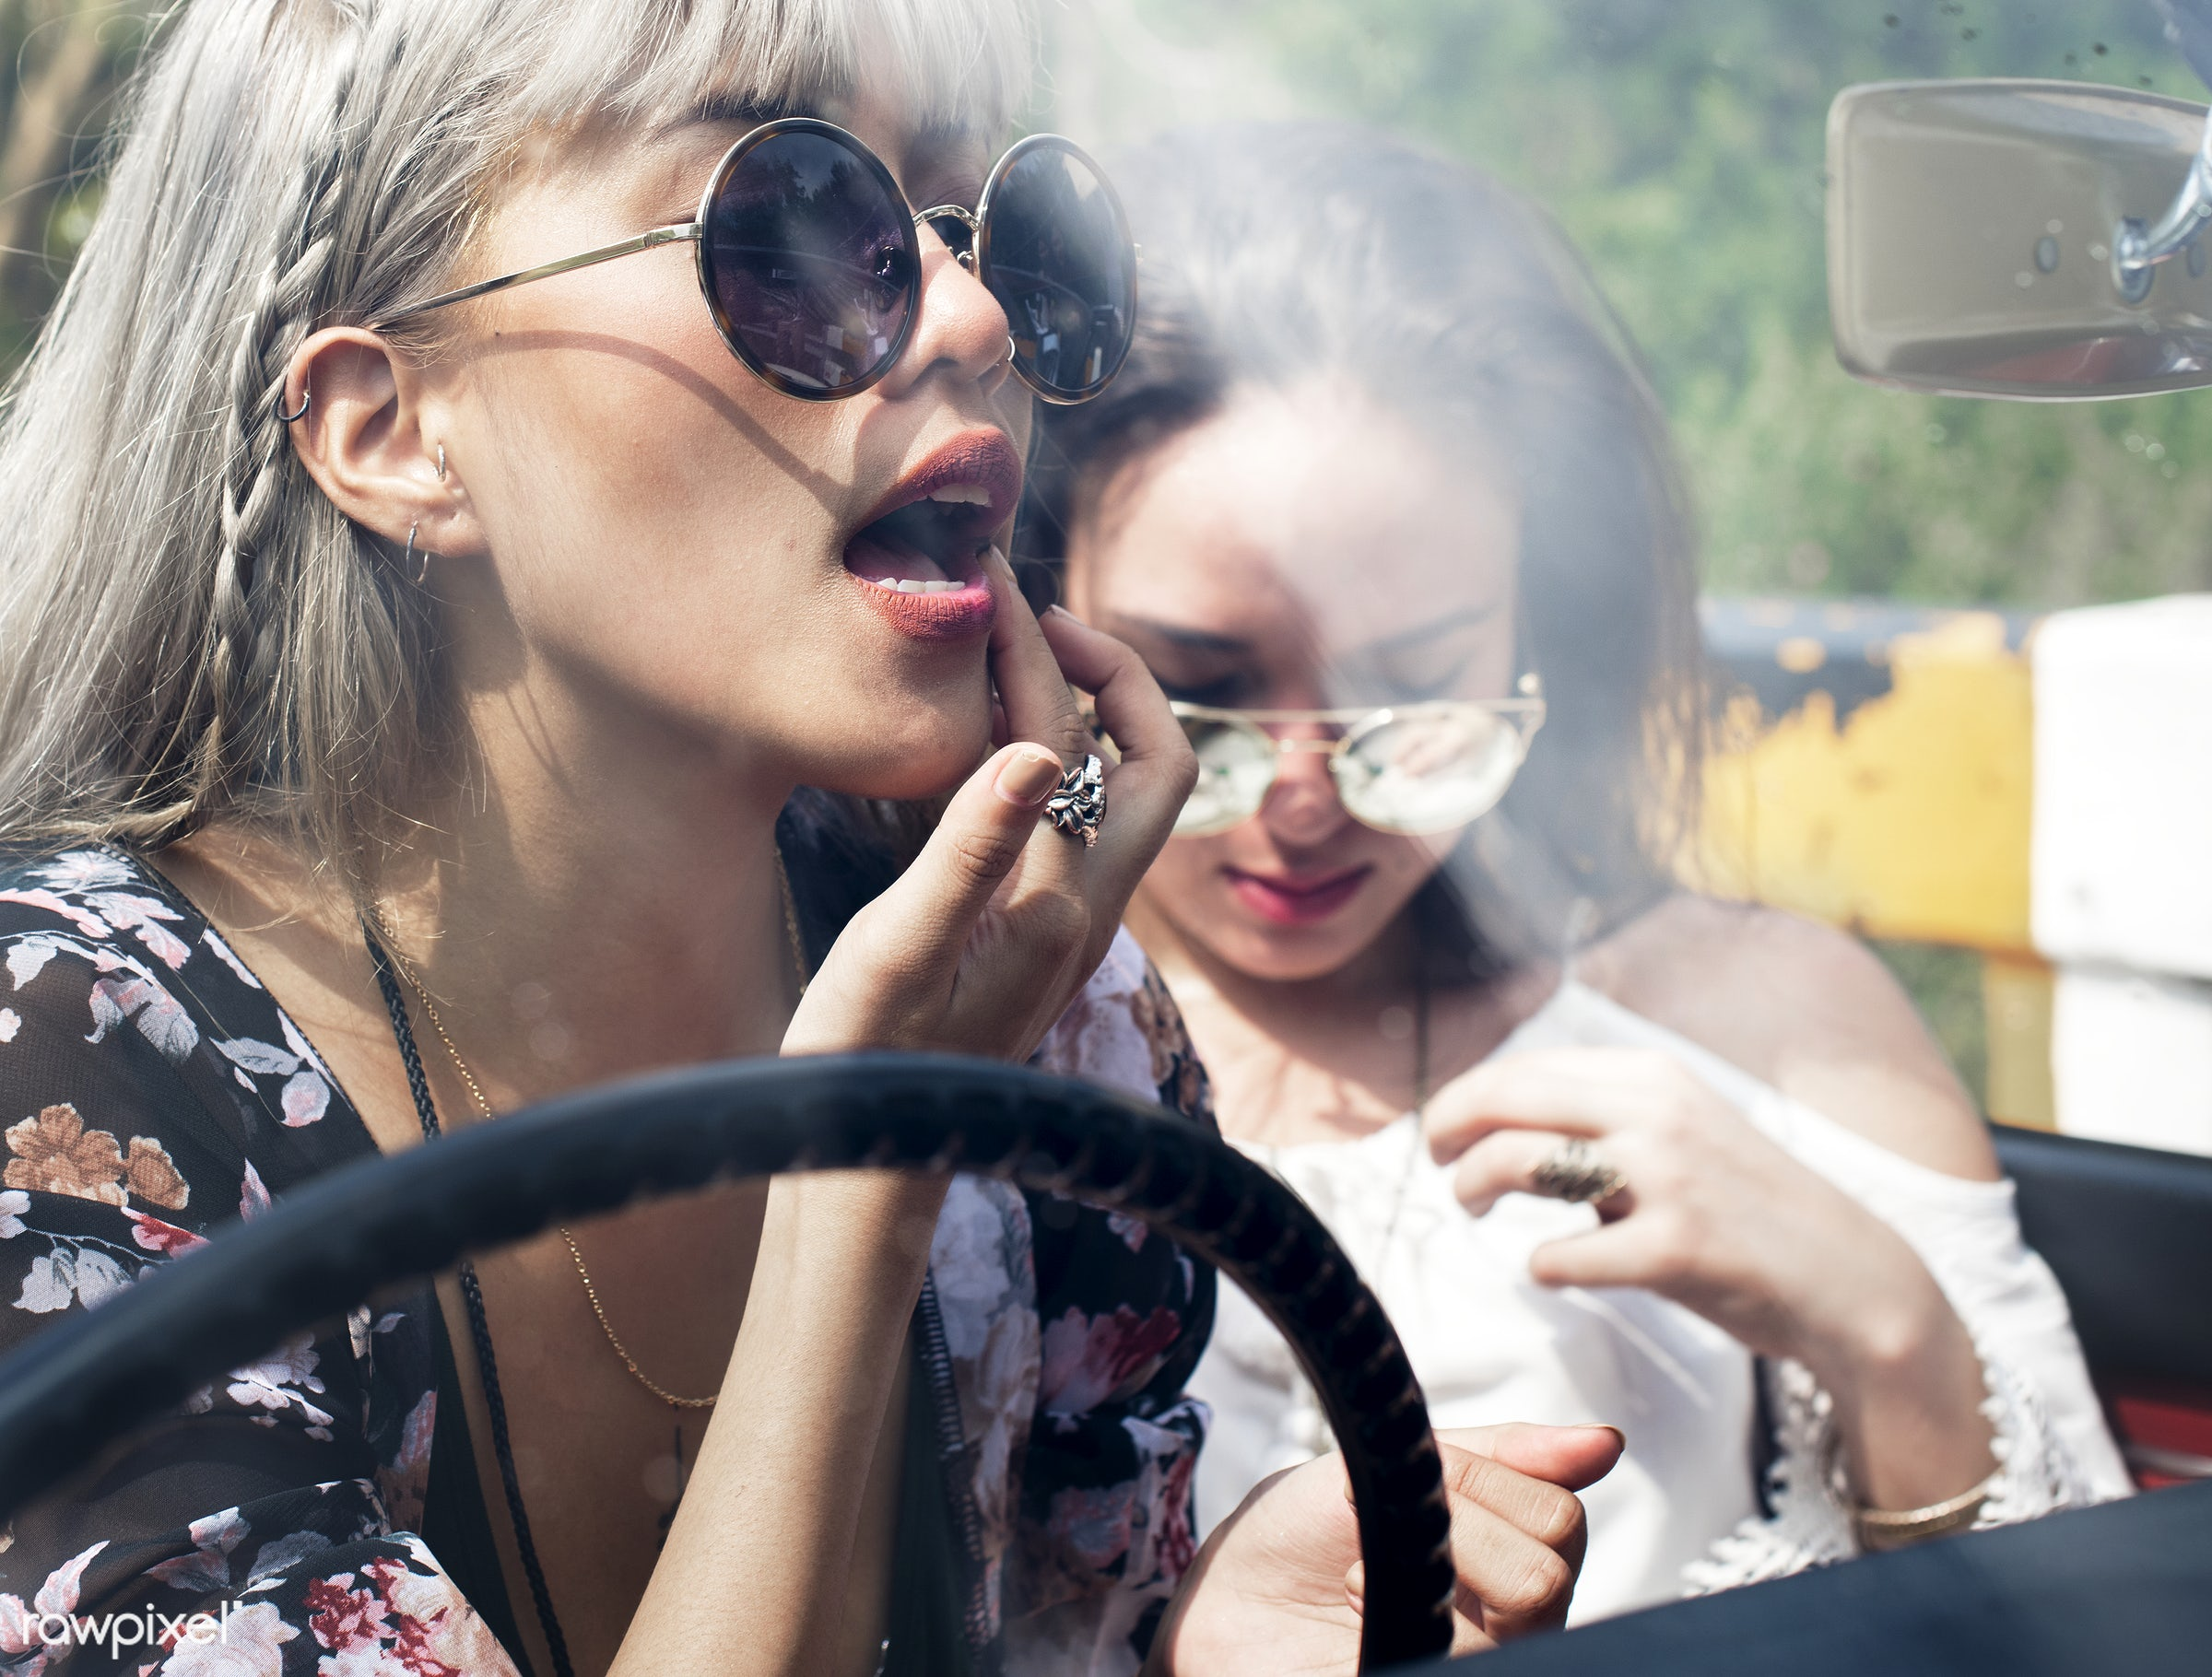 make up, gypsy, adult, adventure, attractive, beauty, car, down, female, front seat, hippy, hipster, journey, joyful, lay,...